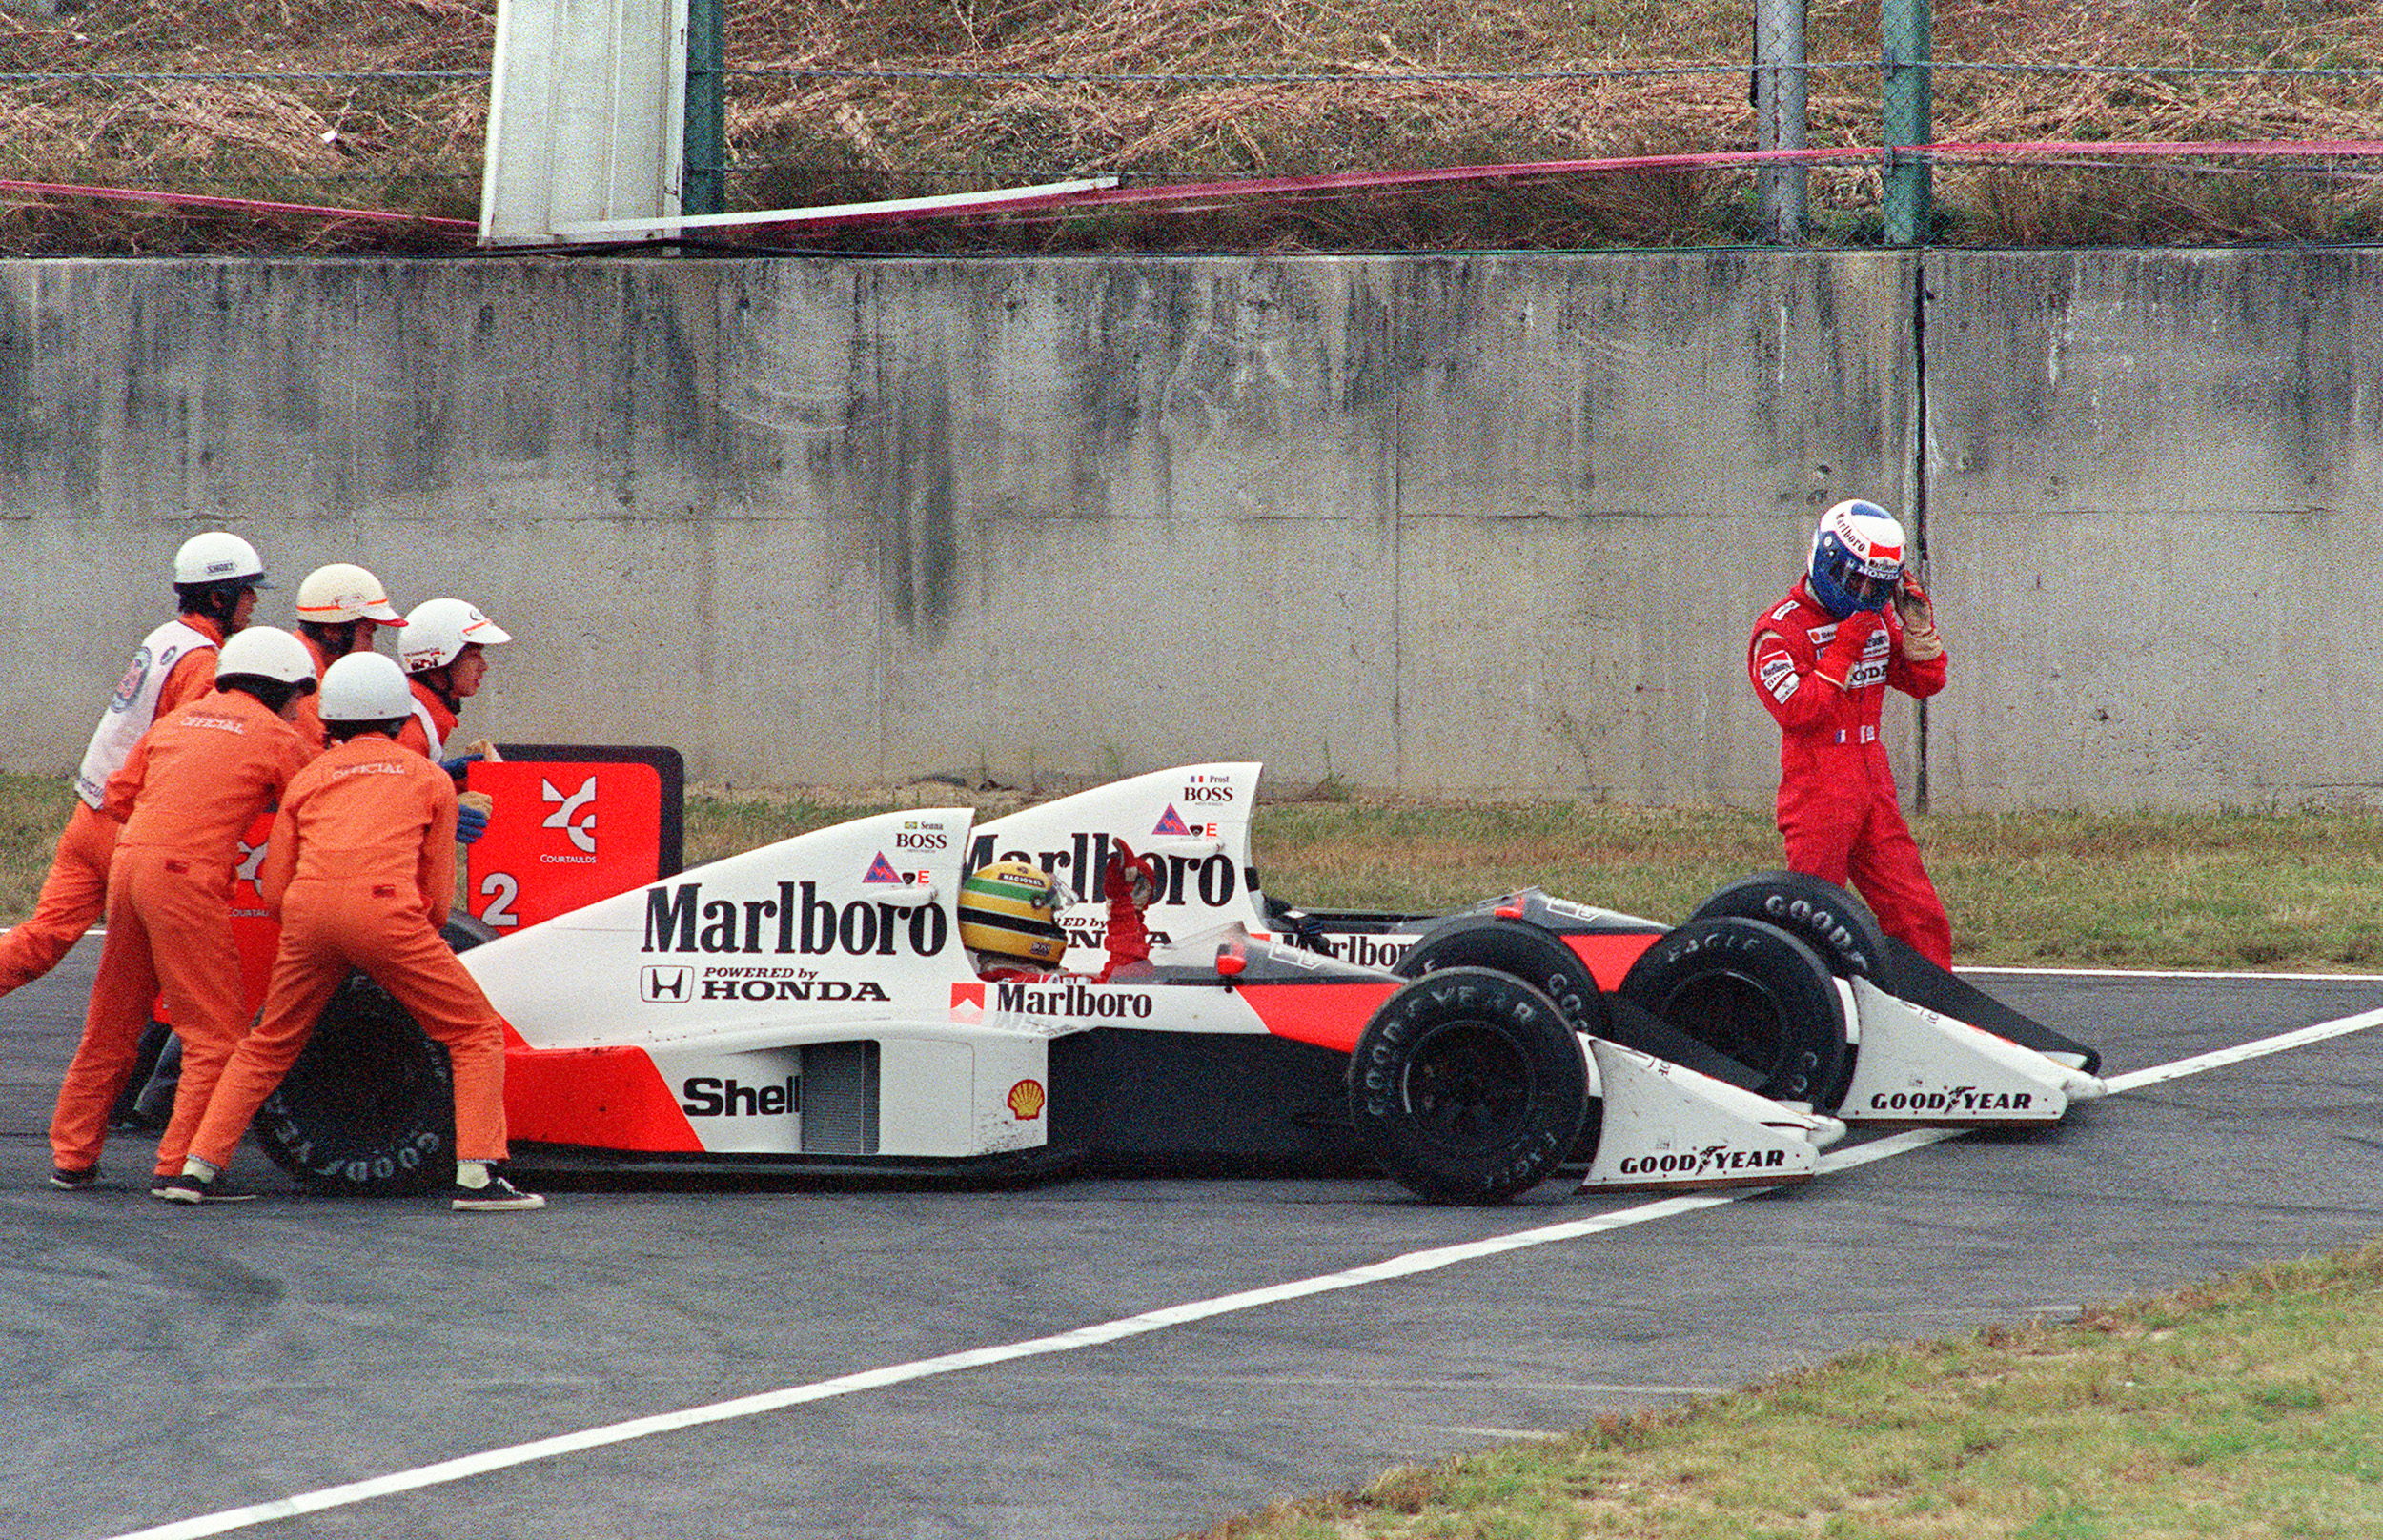 Ayrton Senna and Alain Prost collide at the Casio Triangle chicane in 1989